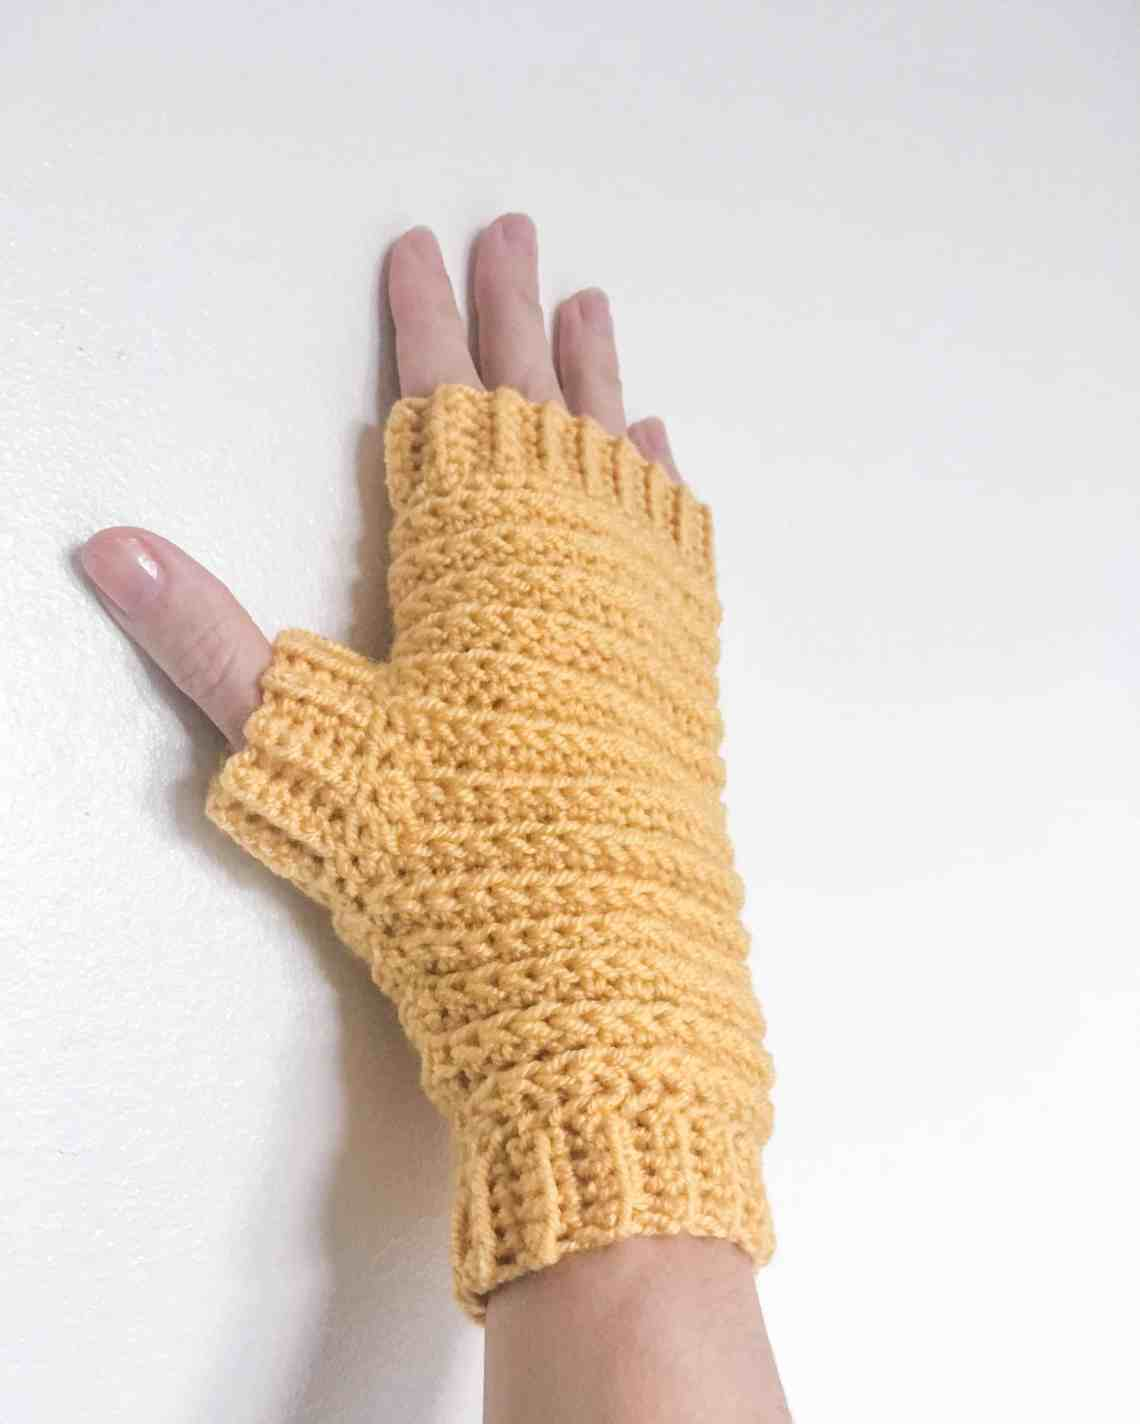 Crochet pattern for unisex fingerless gloves